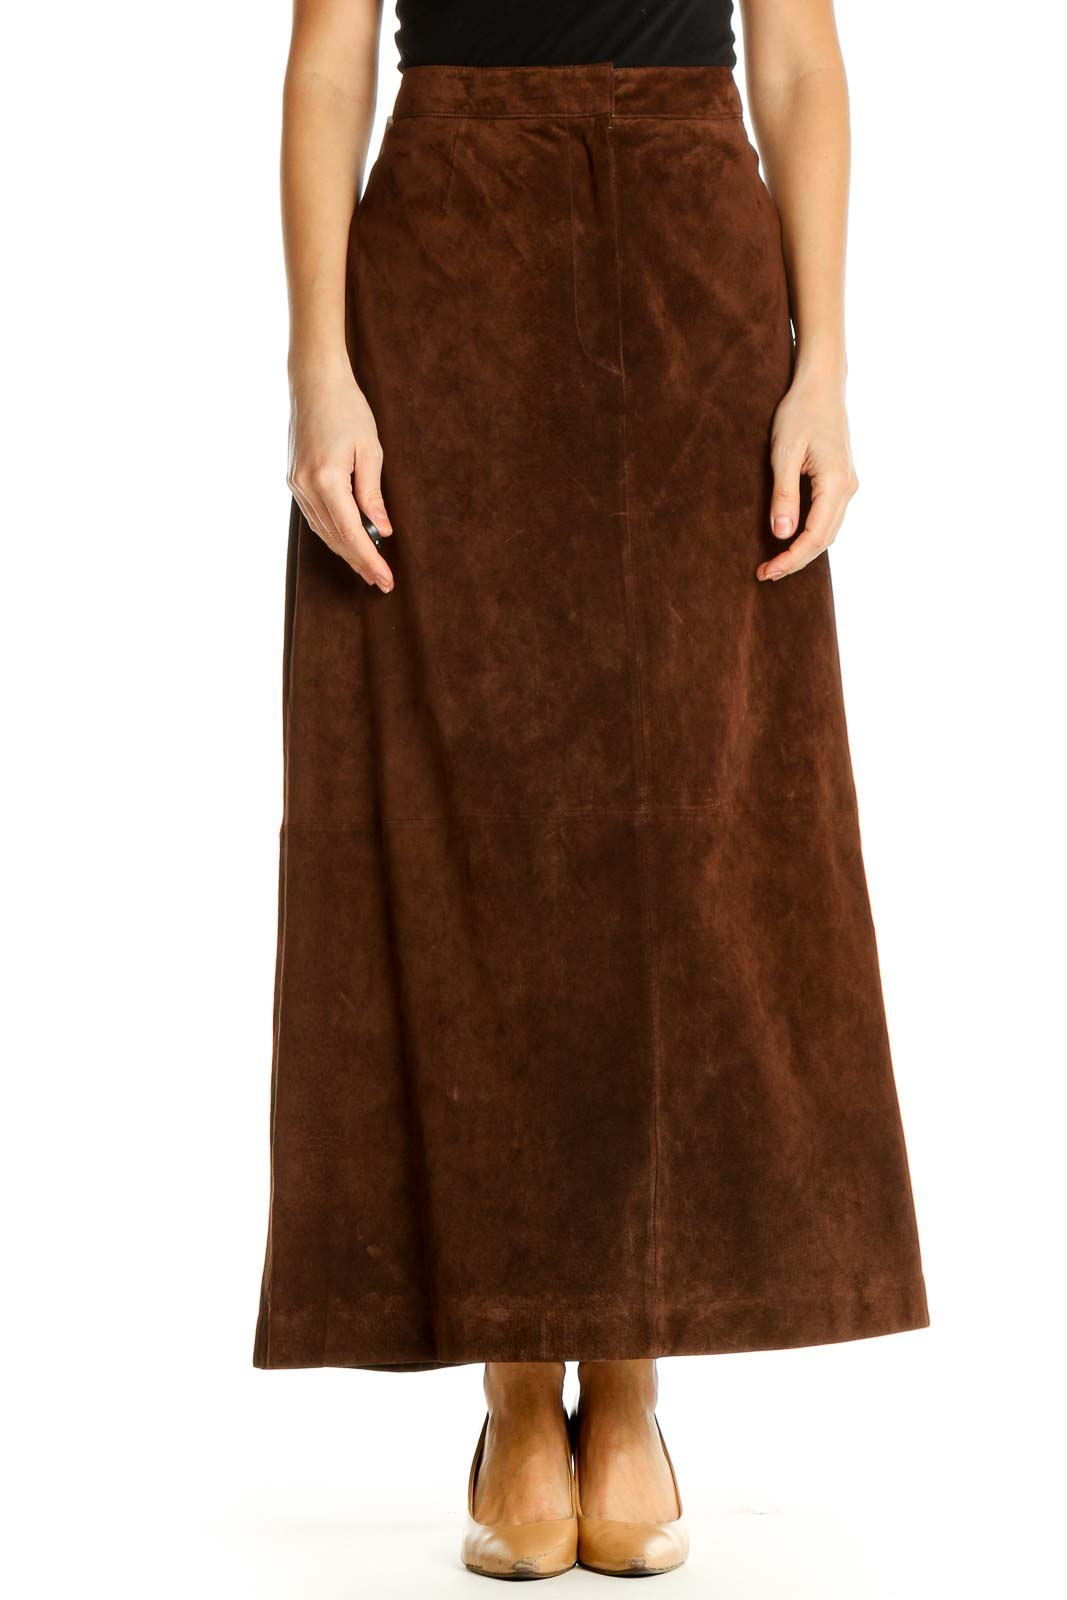 Brown Textured Holiday A-Line Skirt Front